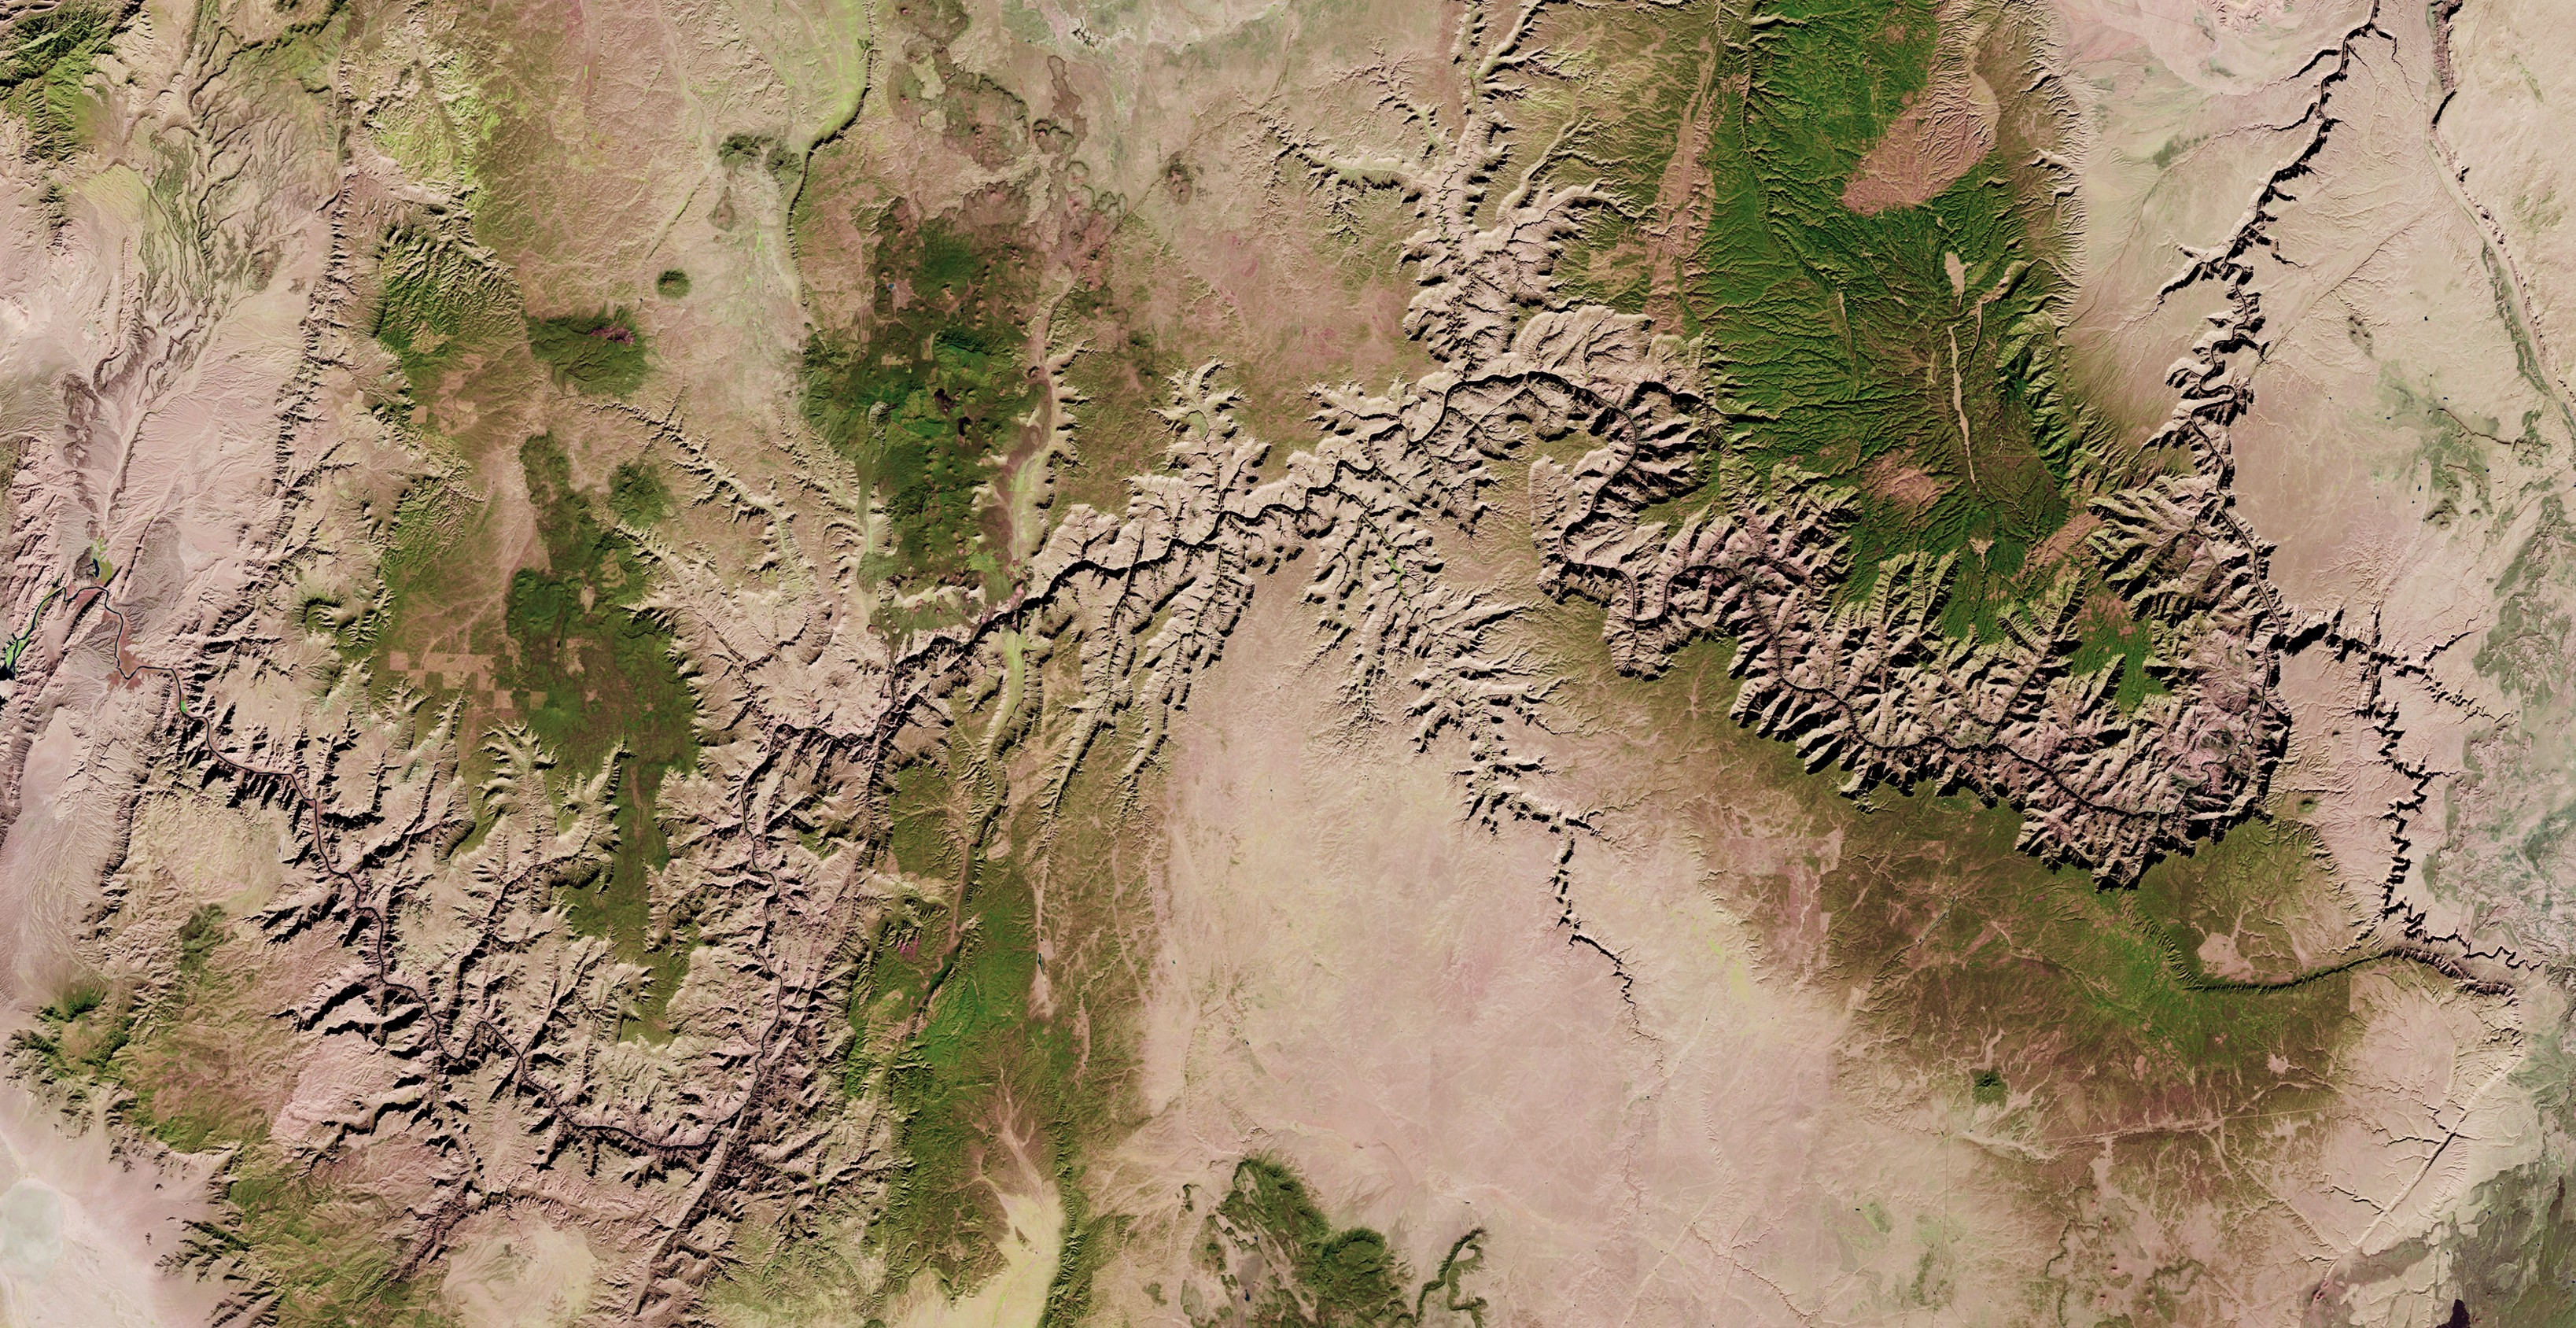 A satellite image of the Grand Canyon taken by Landsat 8.